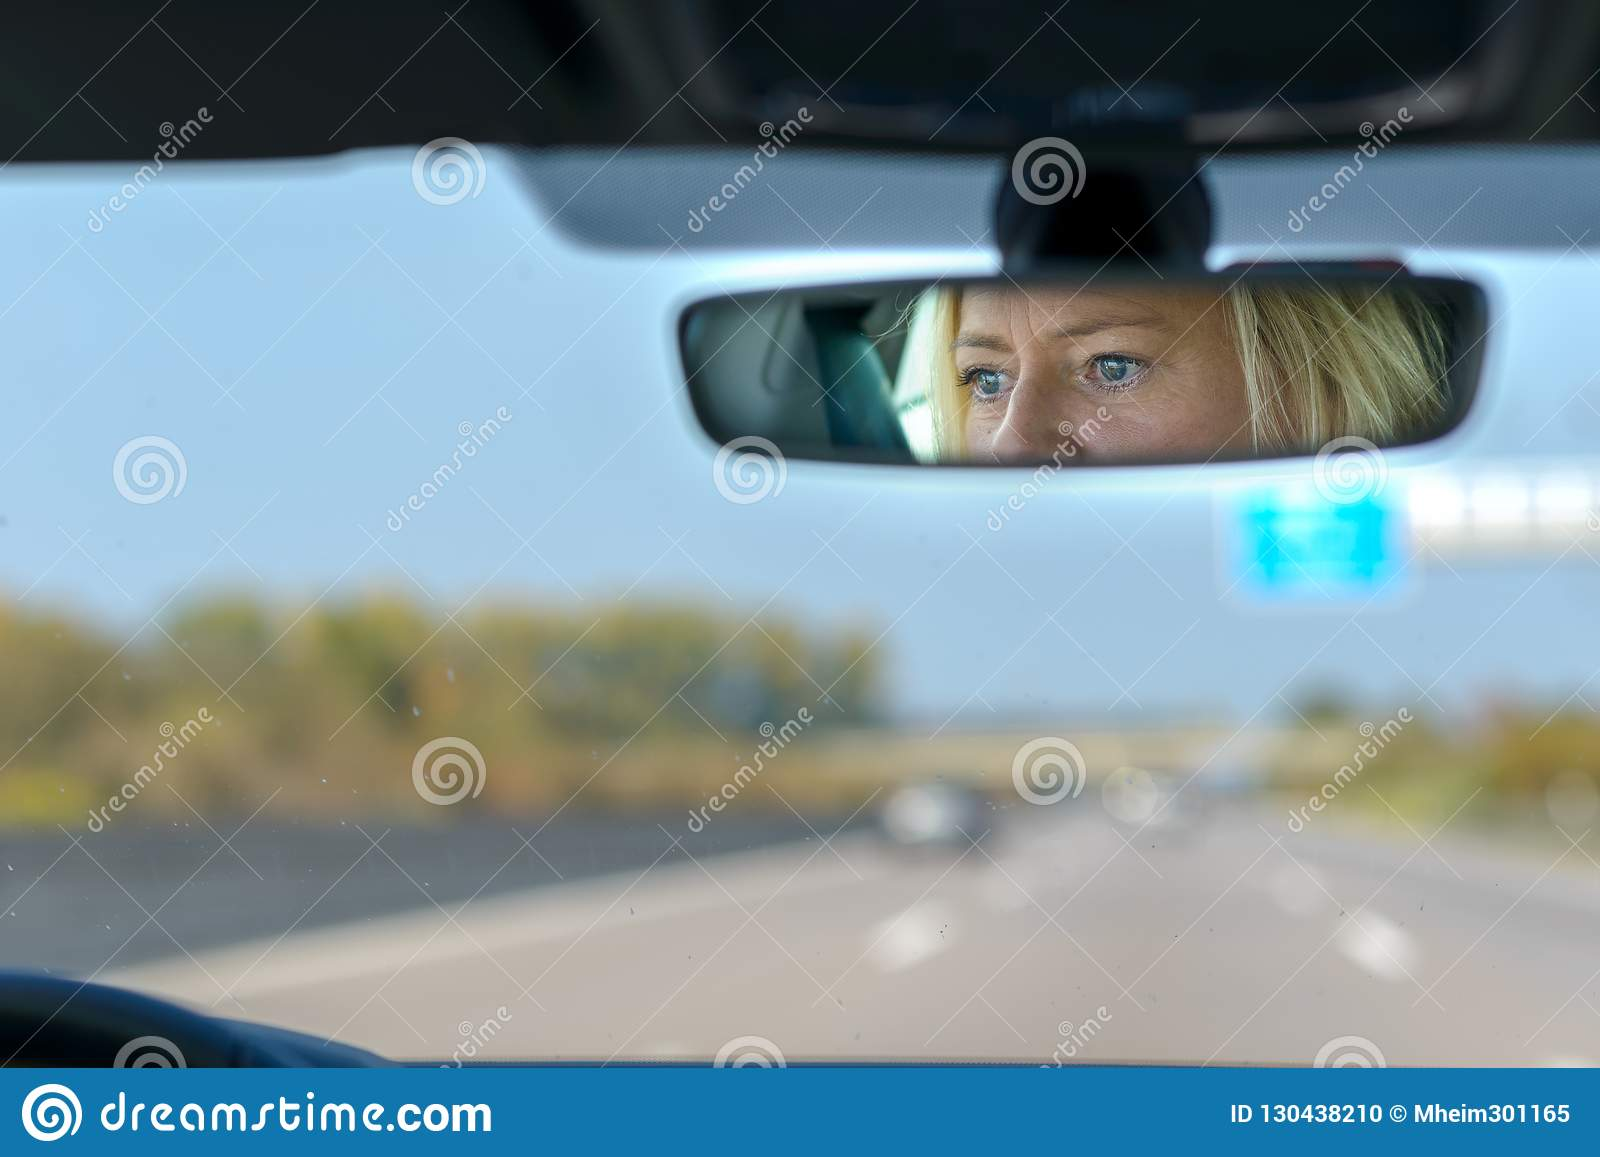 Woman driving a car on a motorway